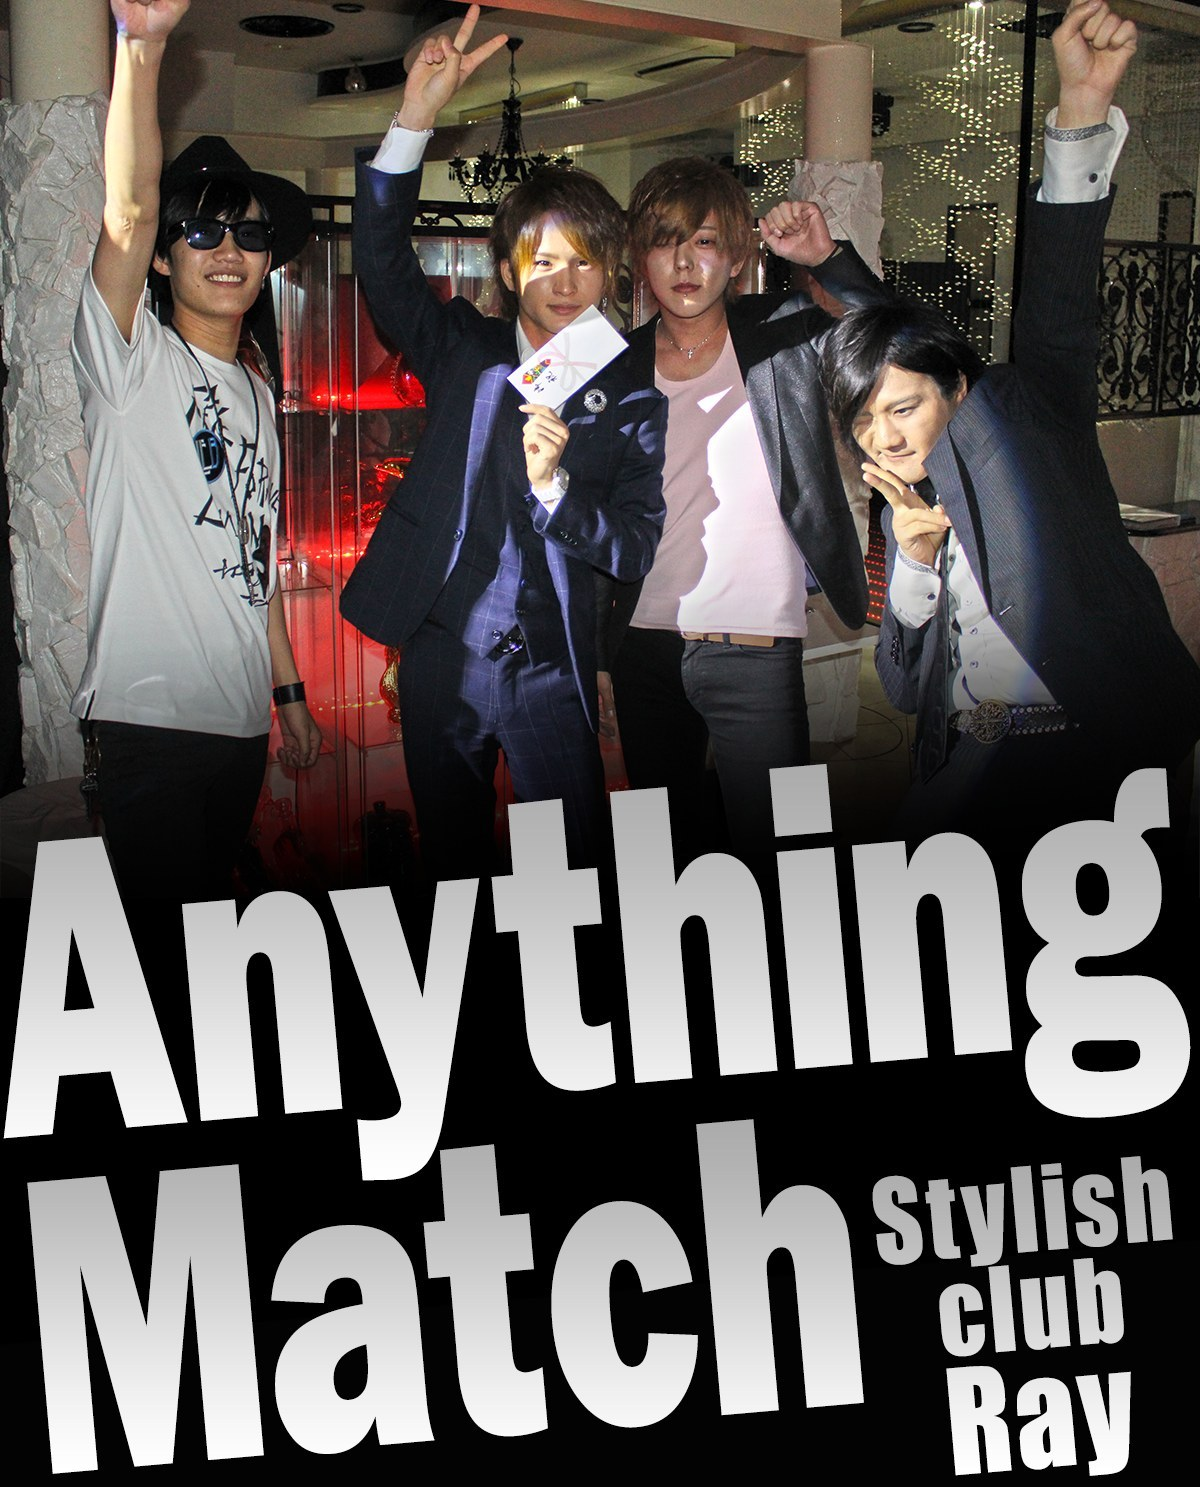 Stylish Club Ray ONE GROUP AnythingMatchイベントのバナー画像